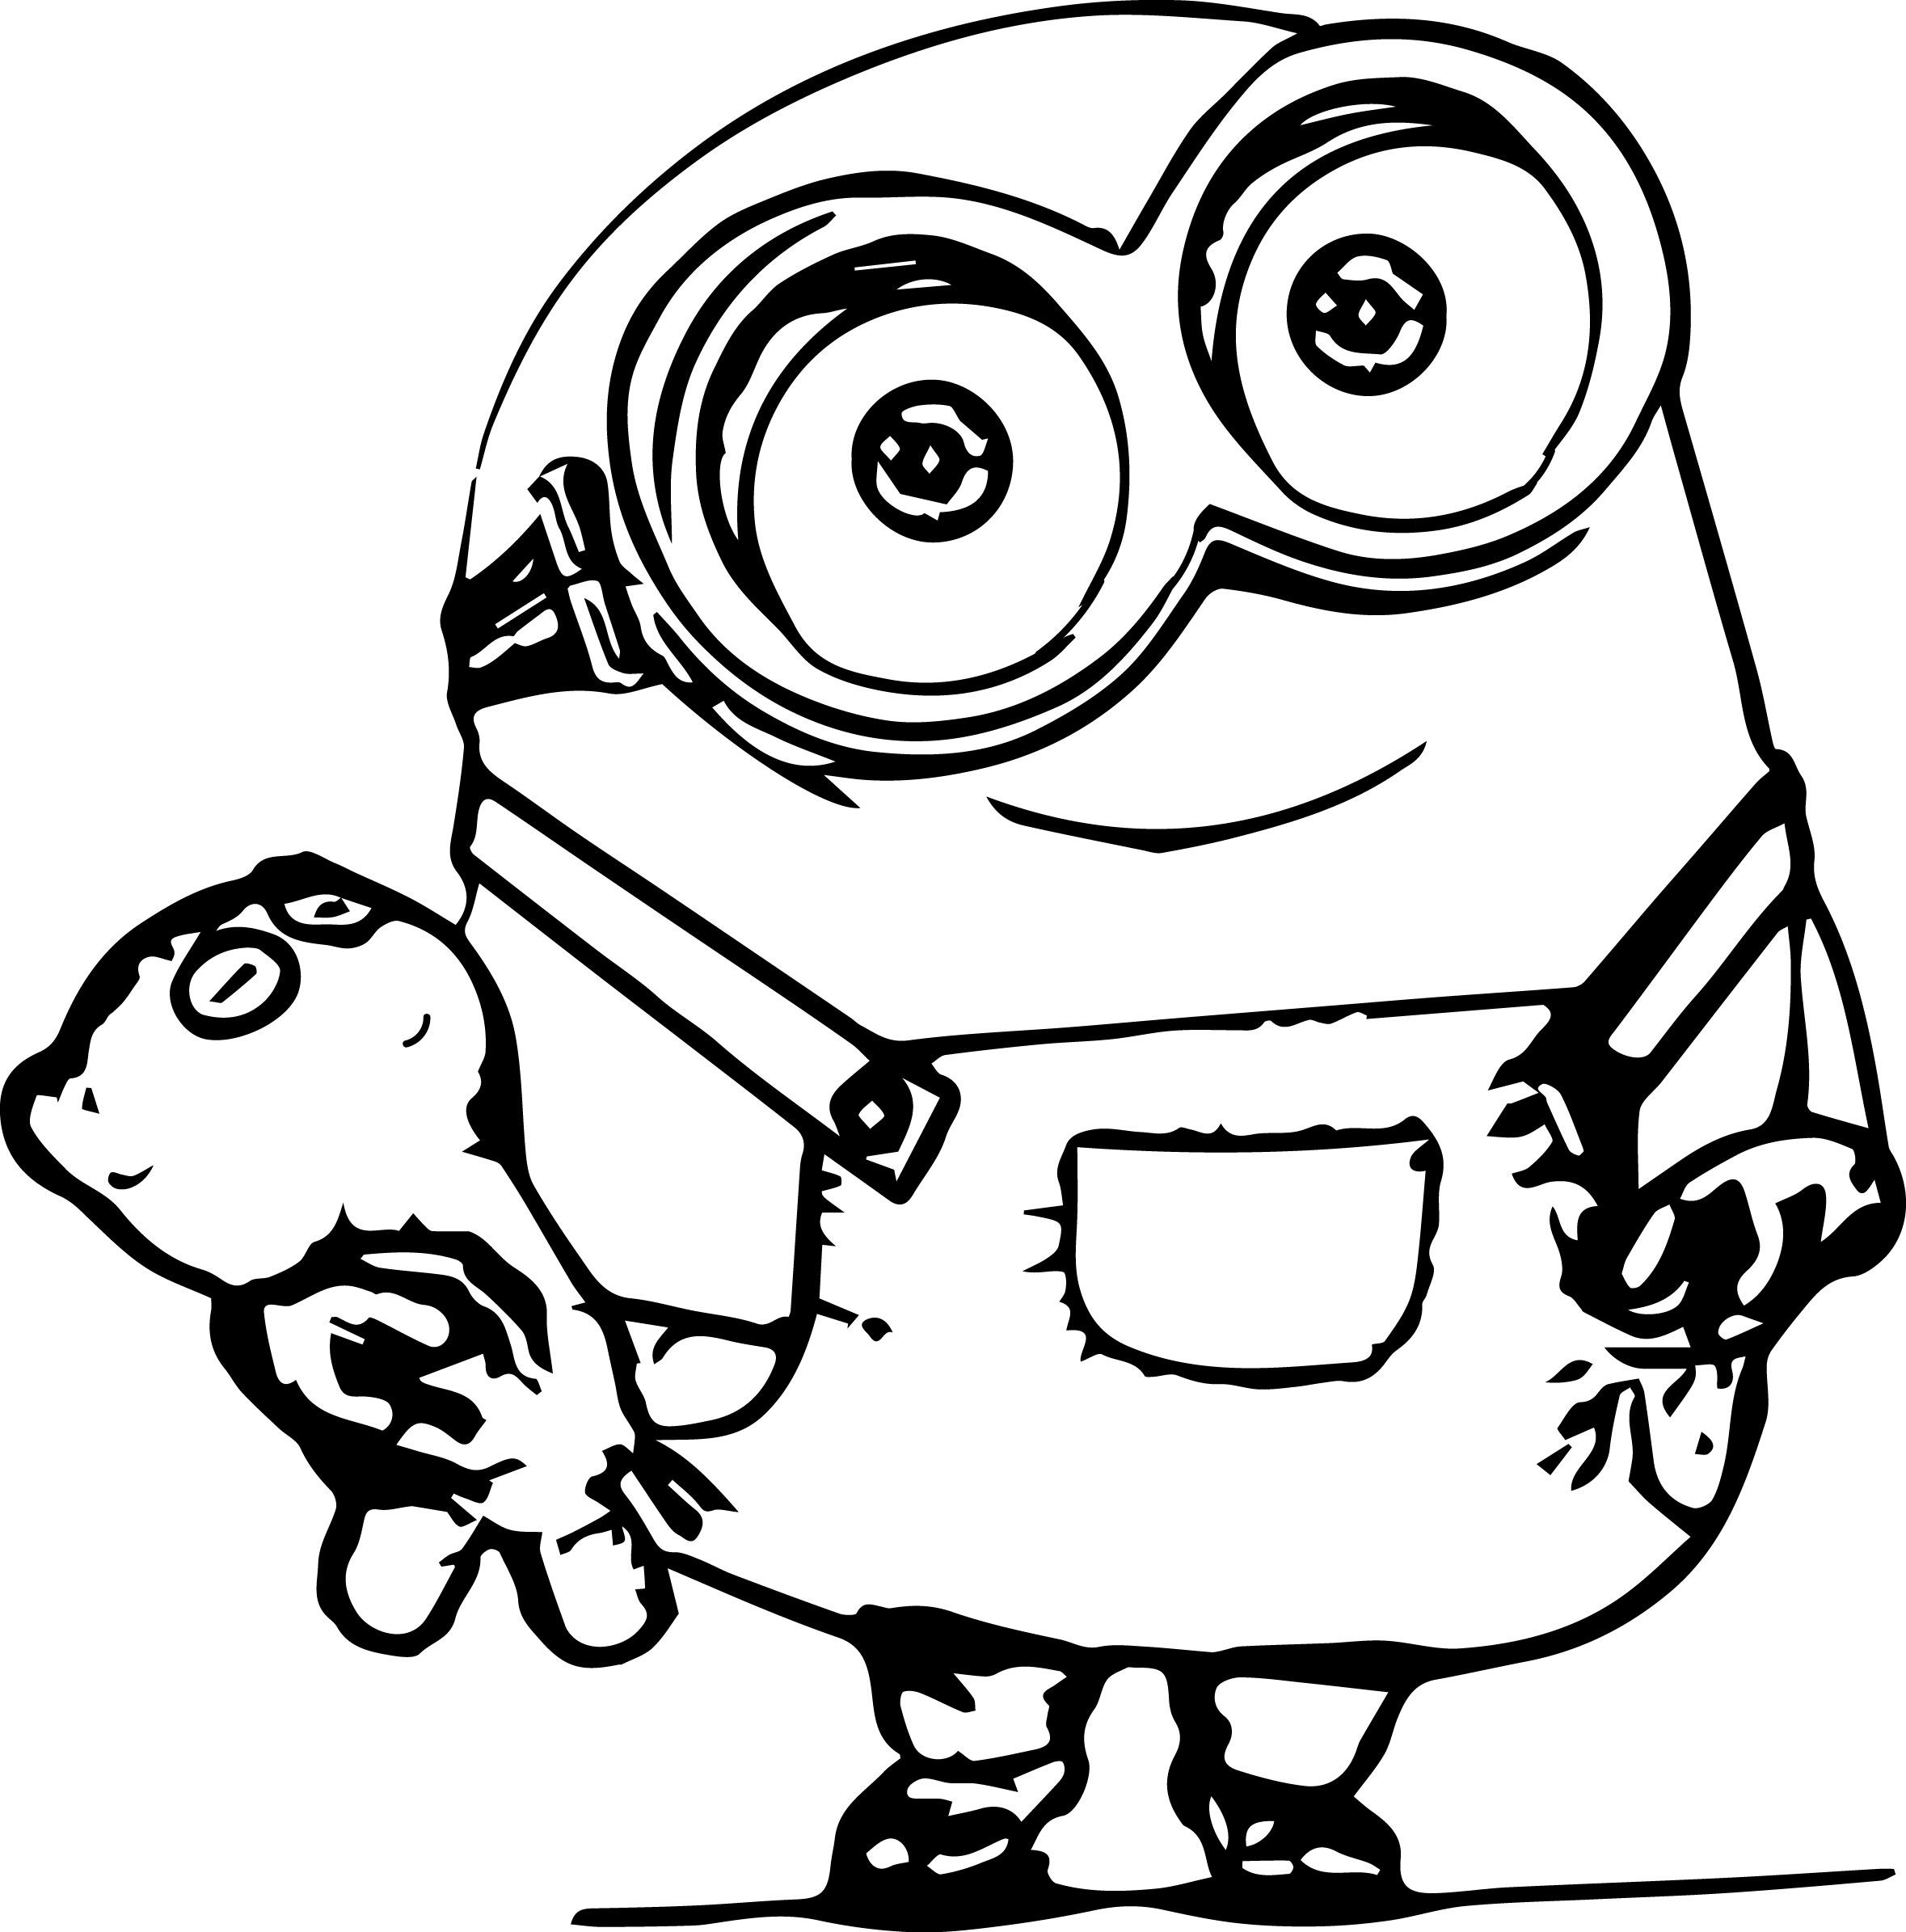 free minion coloring page printable coloring pages pinterest